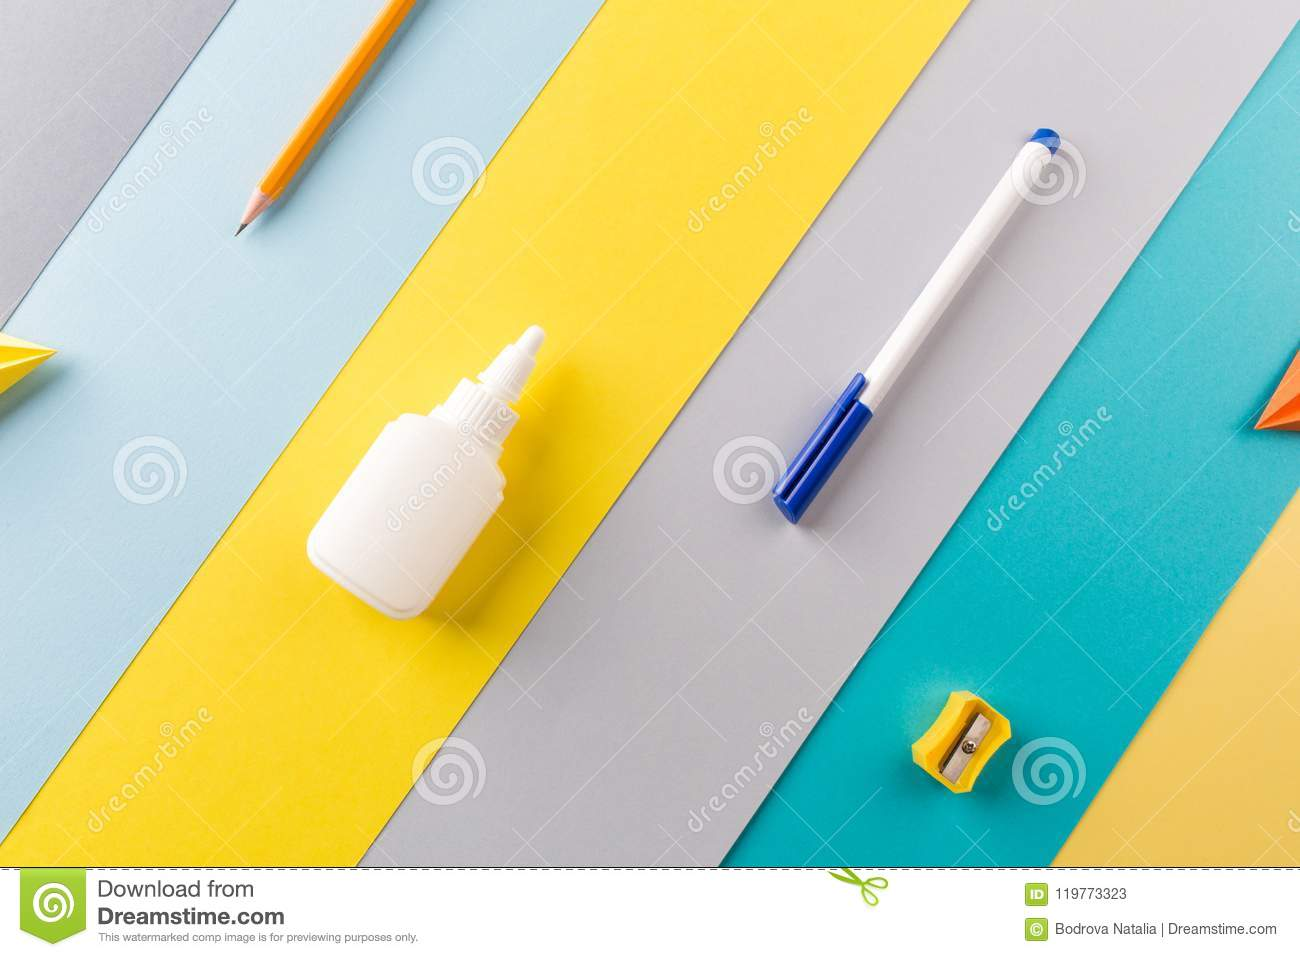 School and office supplies on bright striped background. concept: back to school, minimalism.